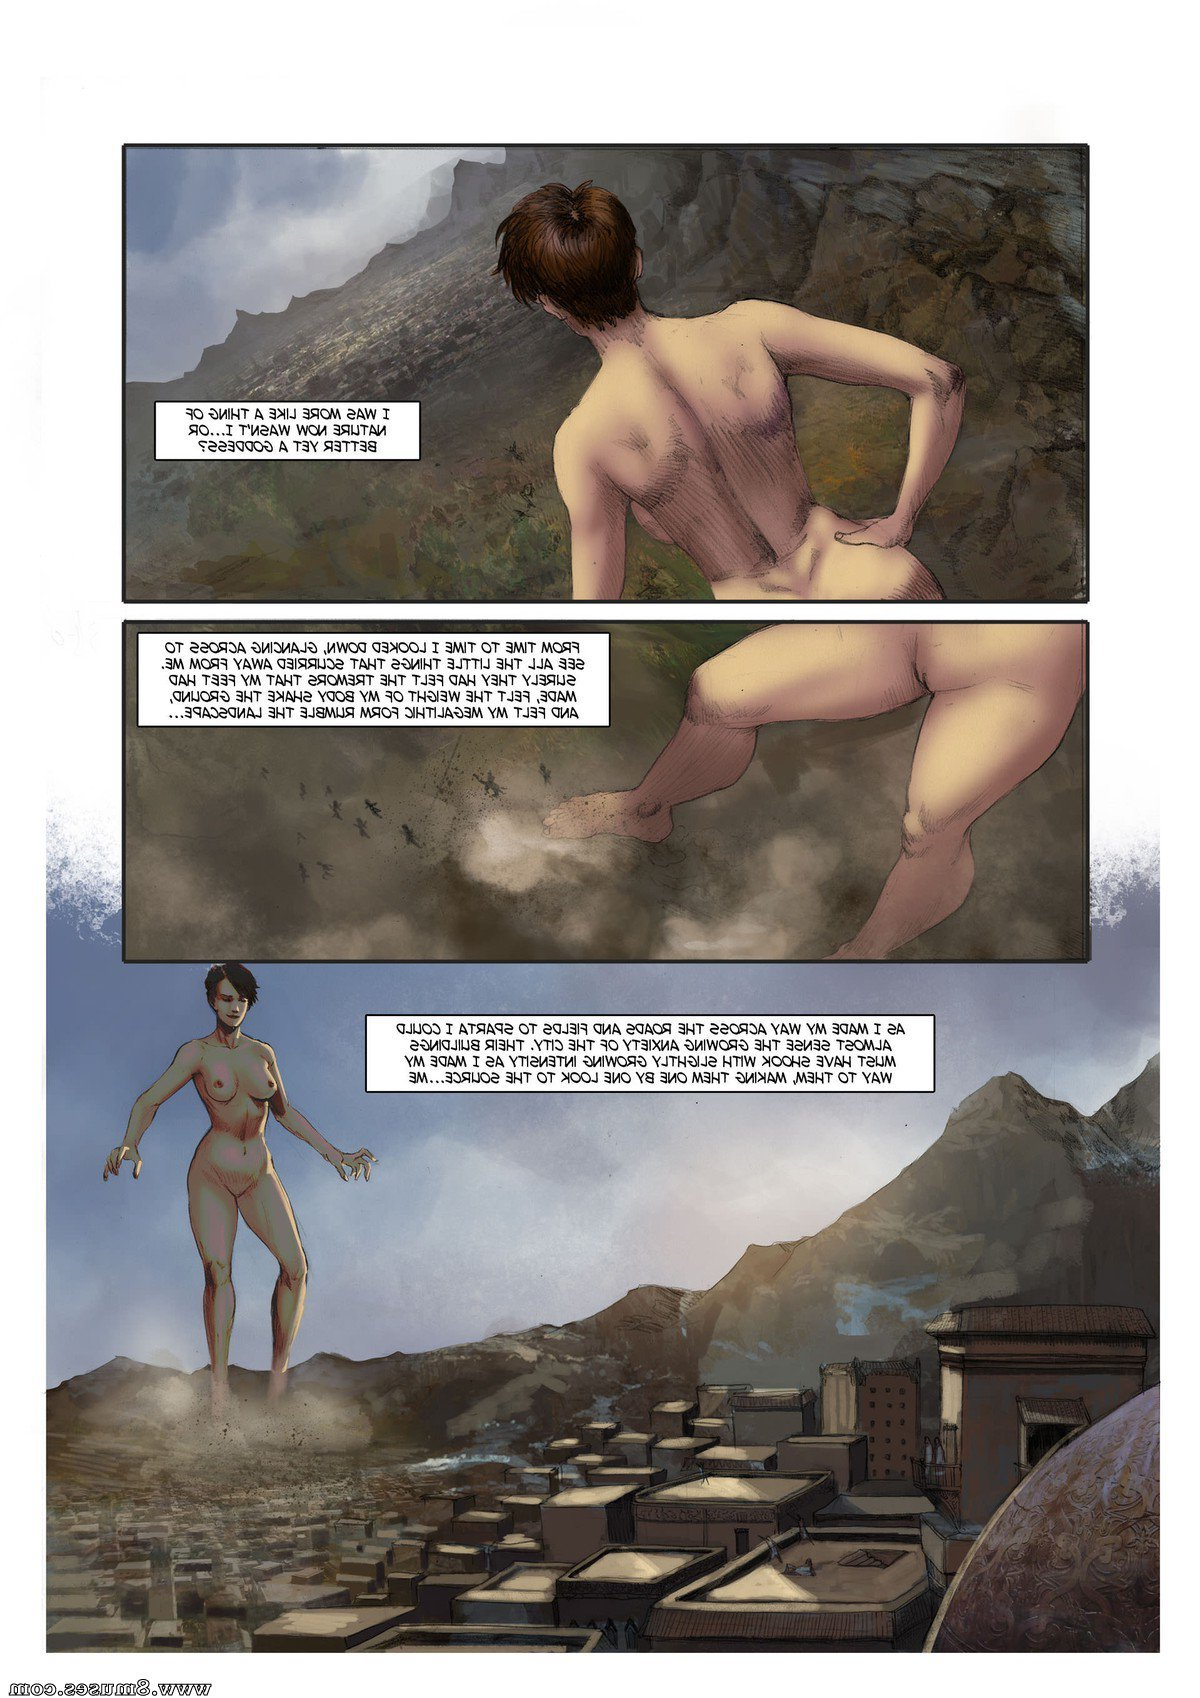 Giantess-Fan-Comics/Goddess-ADBC/Issue-2 Goddess_ADBC_-_Issue_2_4.jpg